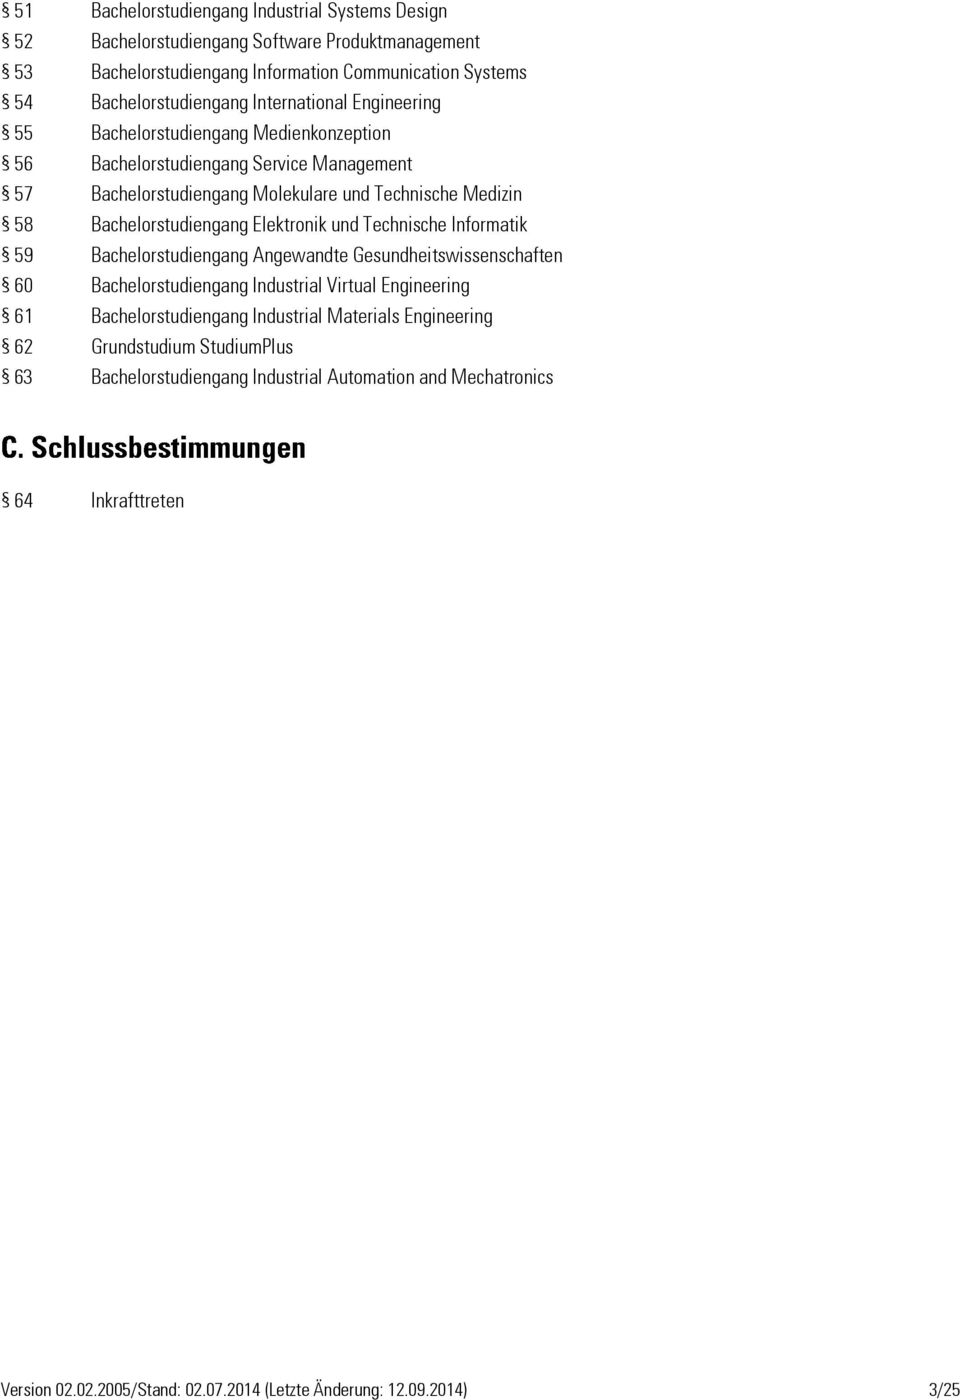 Elektronik und Technische Informatik 59 Bachelorstudiengang Angewandte Gesundheitswissenschaften 60 Bachelorstudiengang Industrial Virtual Engineering 61 Bachelorstudiengang Industrial